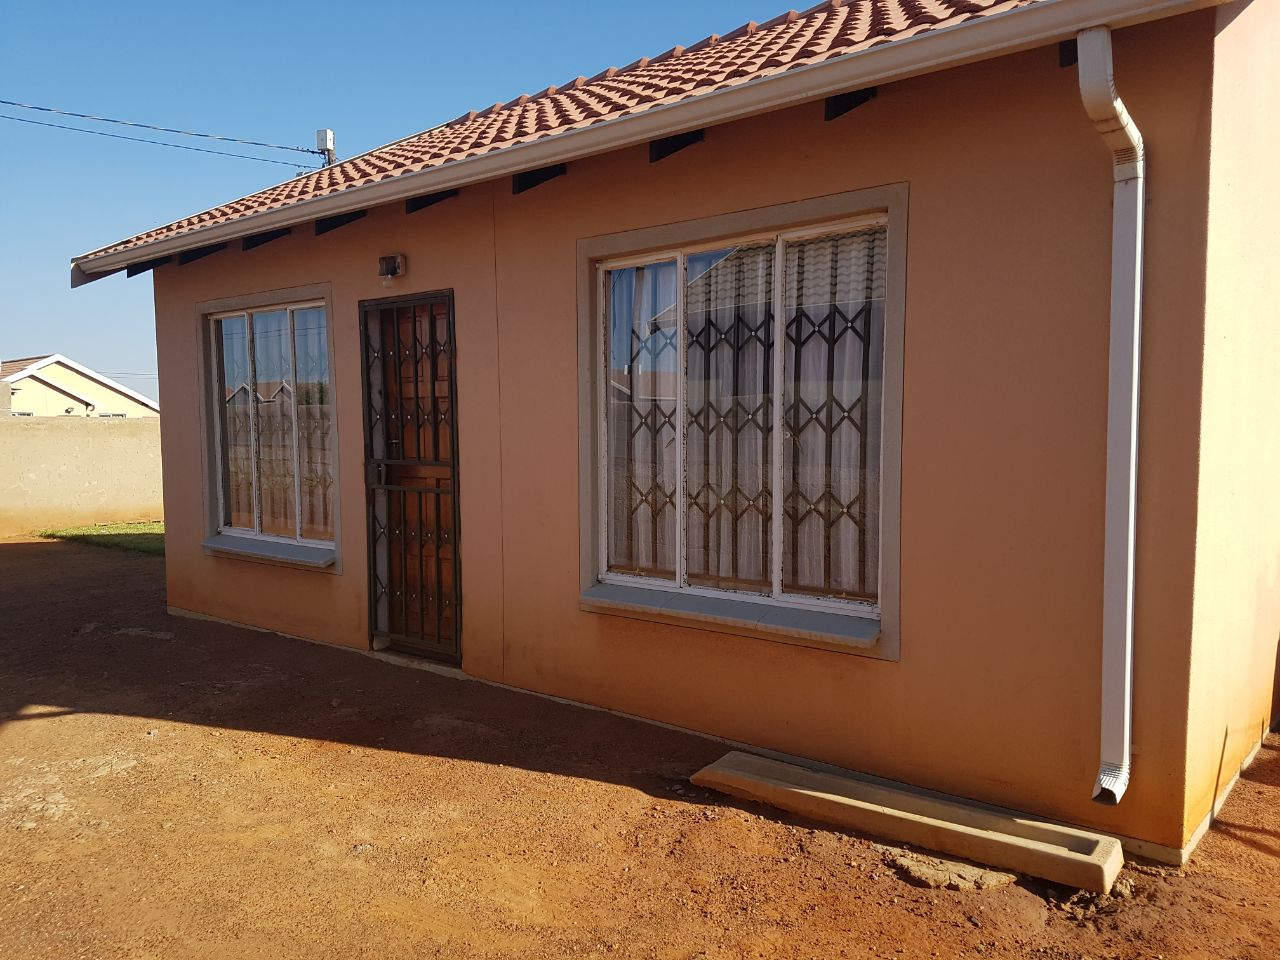 Secure 2 Bedroom House with an open plan kitchen and lounge,bathroom with a toilet.Secure high walls with a secure locking gate for rental at Protea Glen Ext 27,23948 Mandarine Crescent